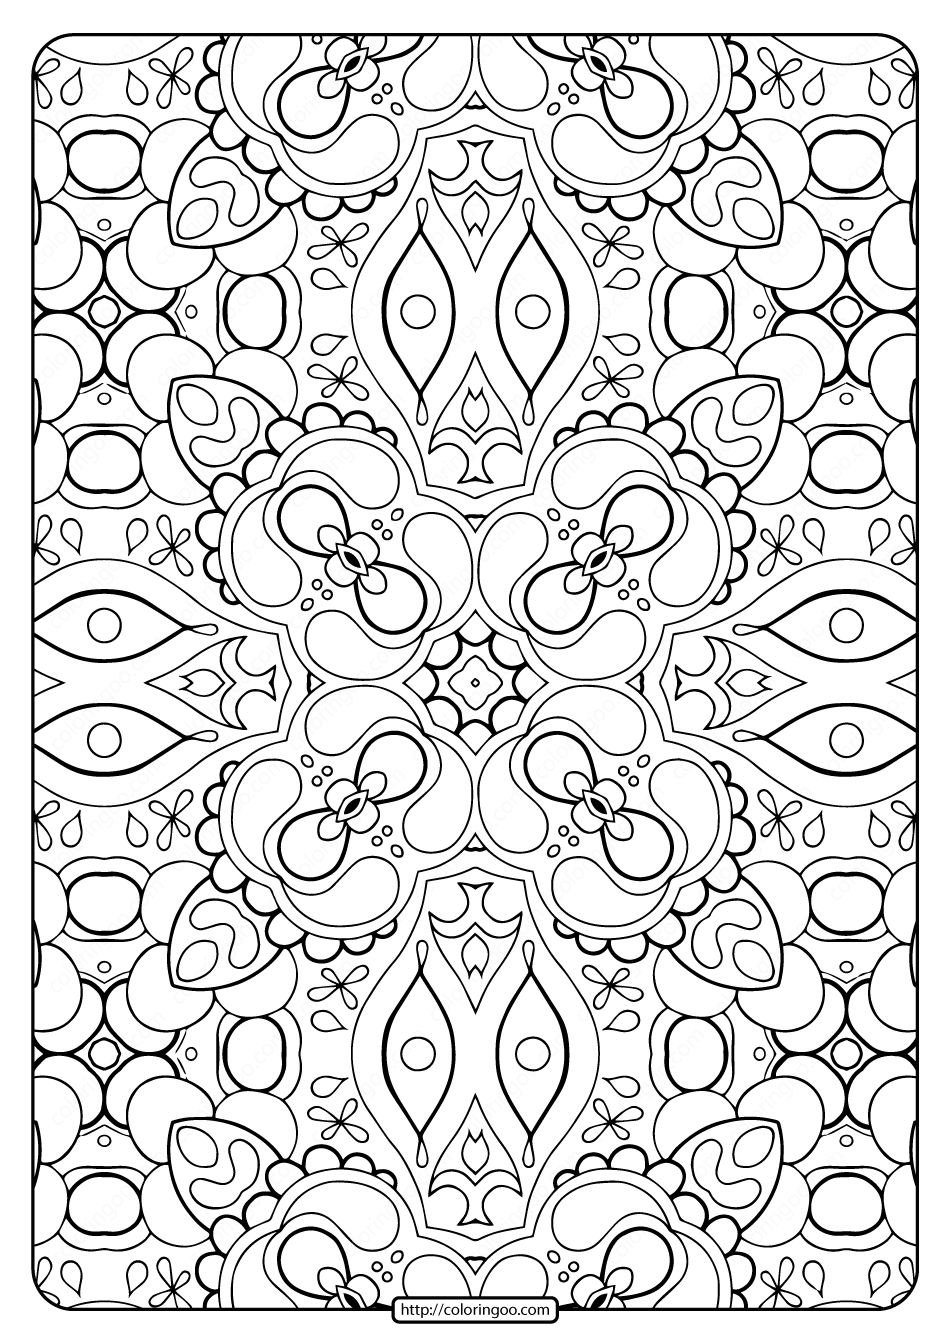 free abstract coloring pages free printable abstract pdf coloring page abstract free coloring pages